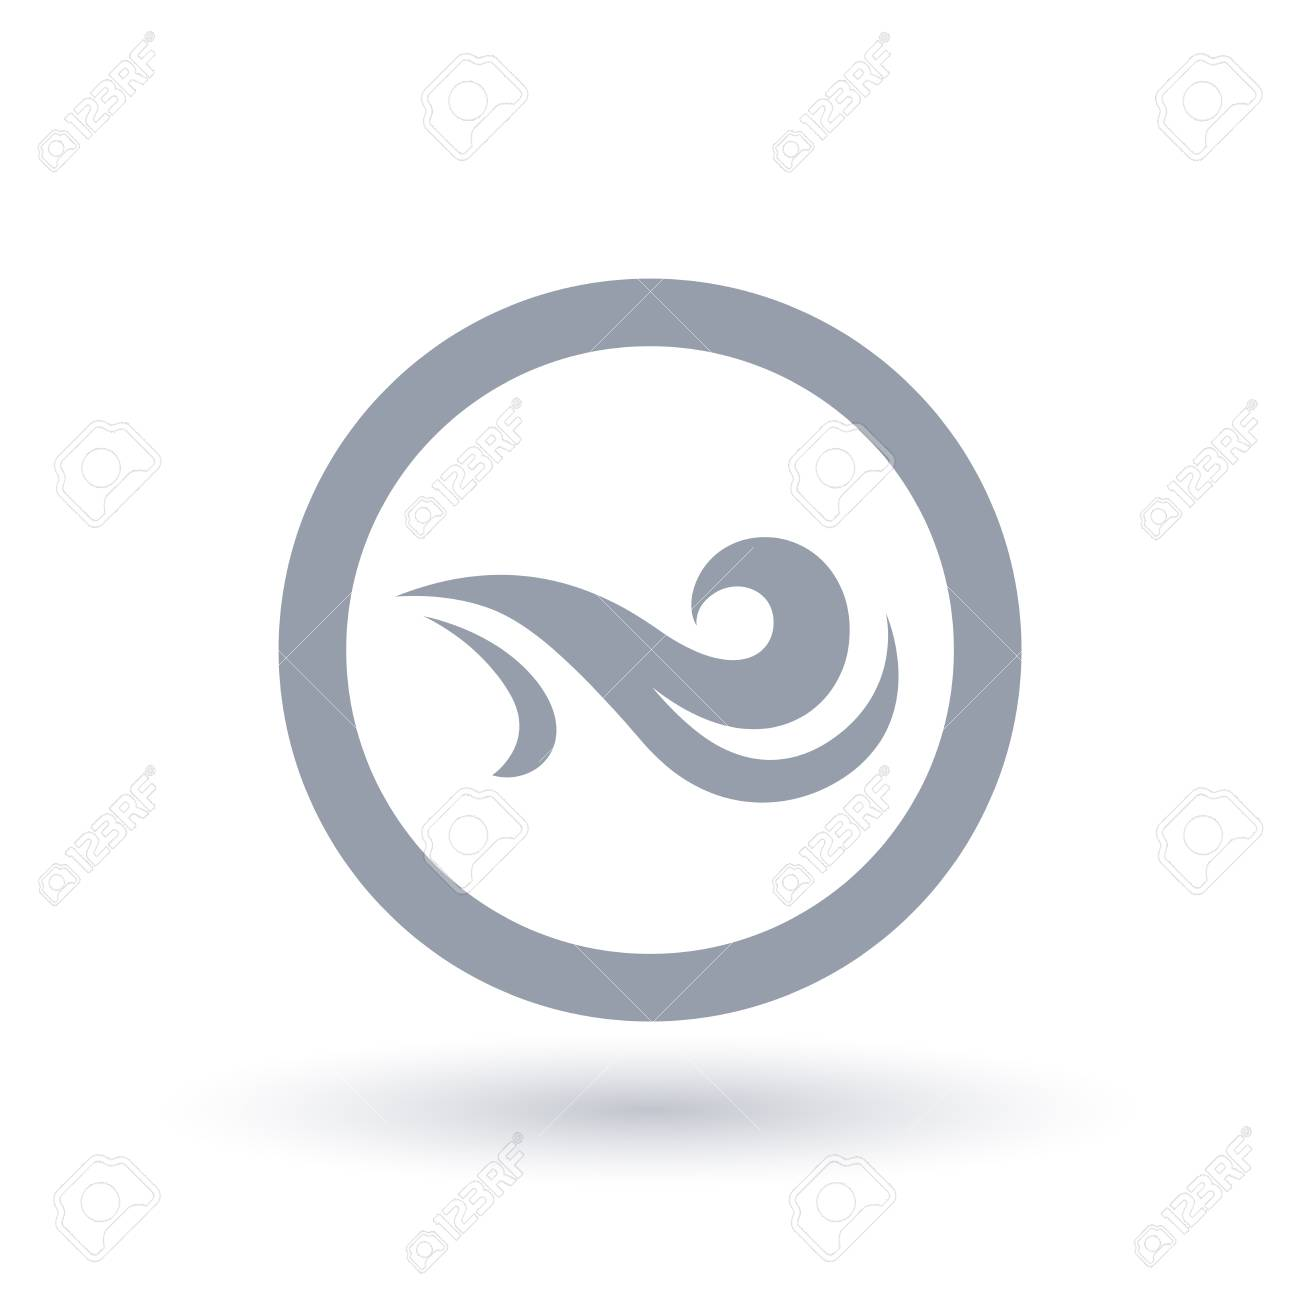 III - Ventos Cruzados  98884453-fresh-wind-icon-in-circle-outline-air-flow-symbol-wind-breeze-sign-vector-illustration-